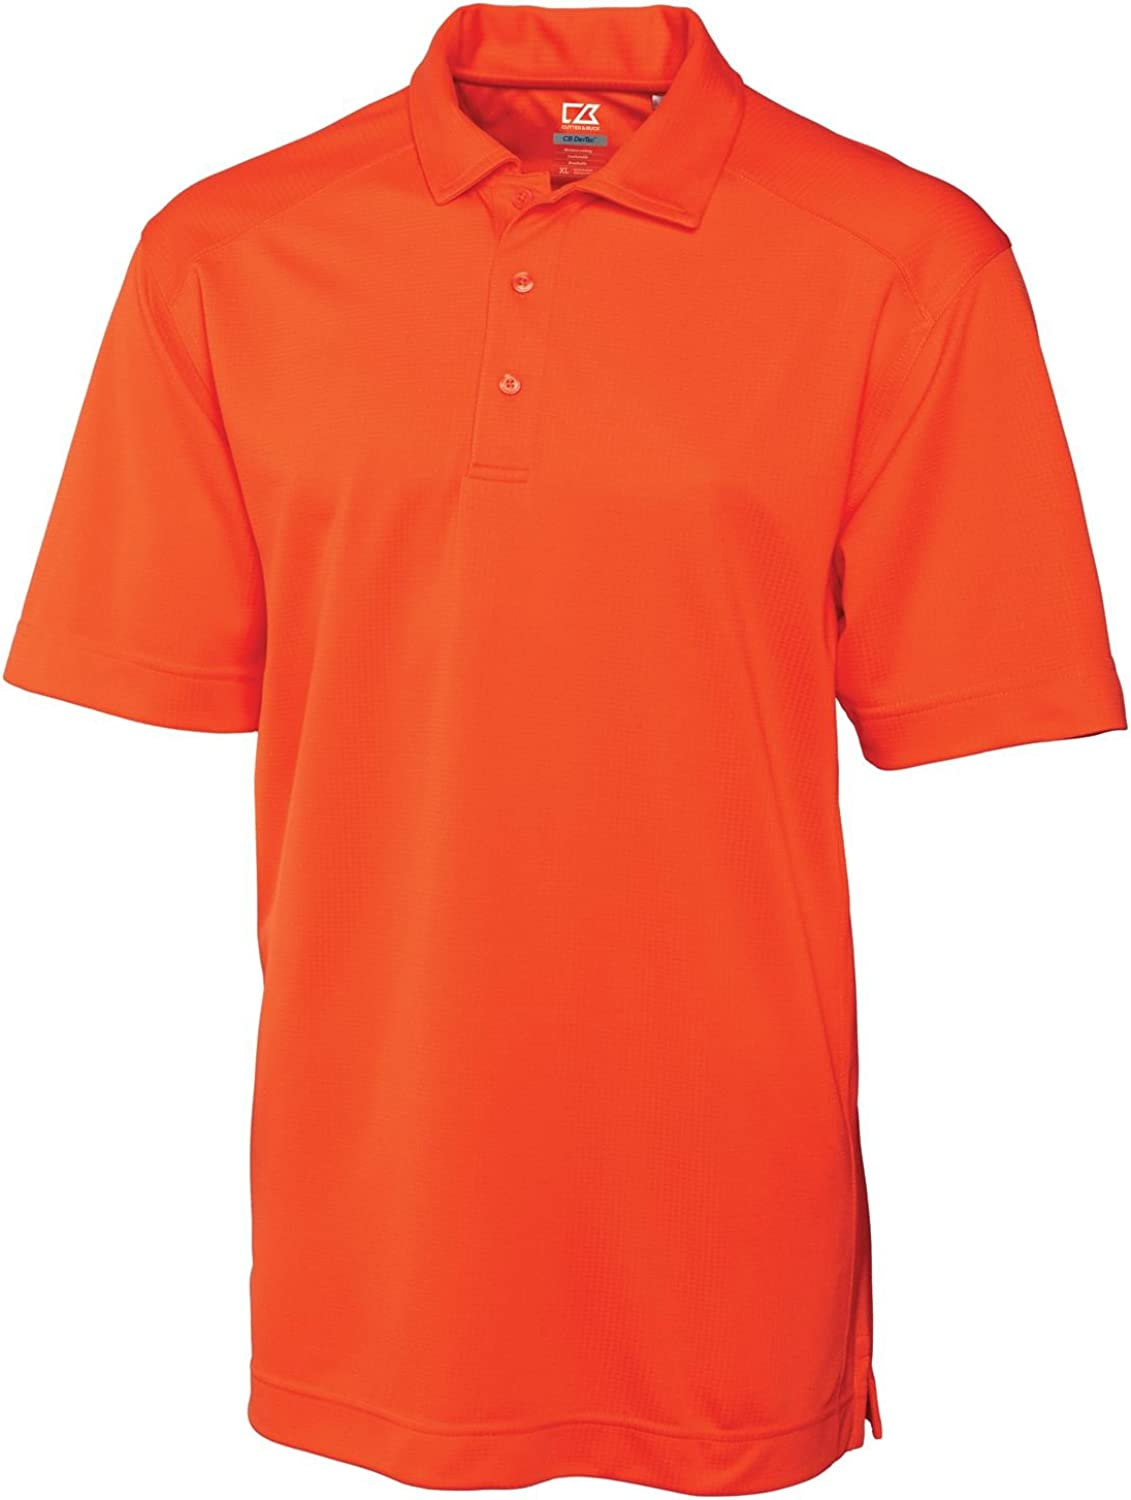 Cutter & Buck Big and Tall Drytec Genre Polo